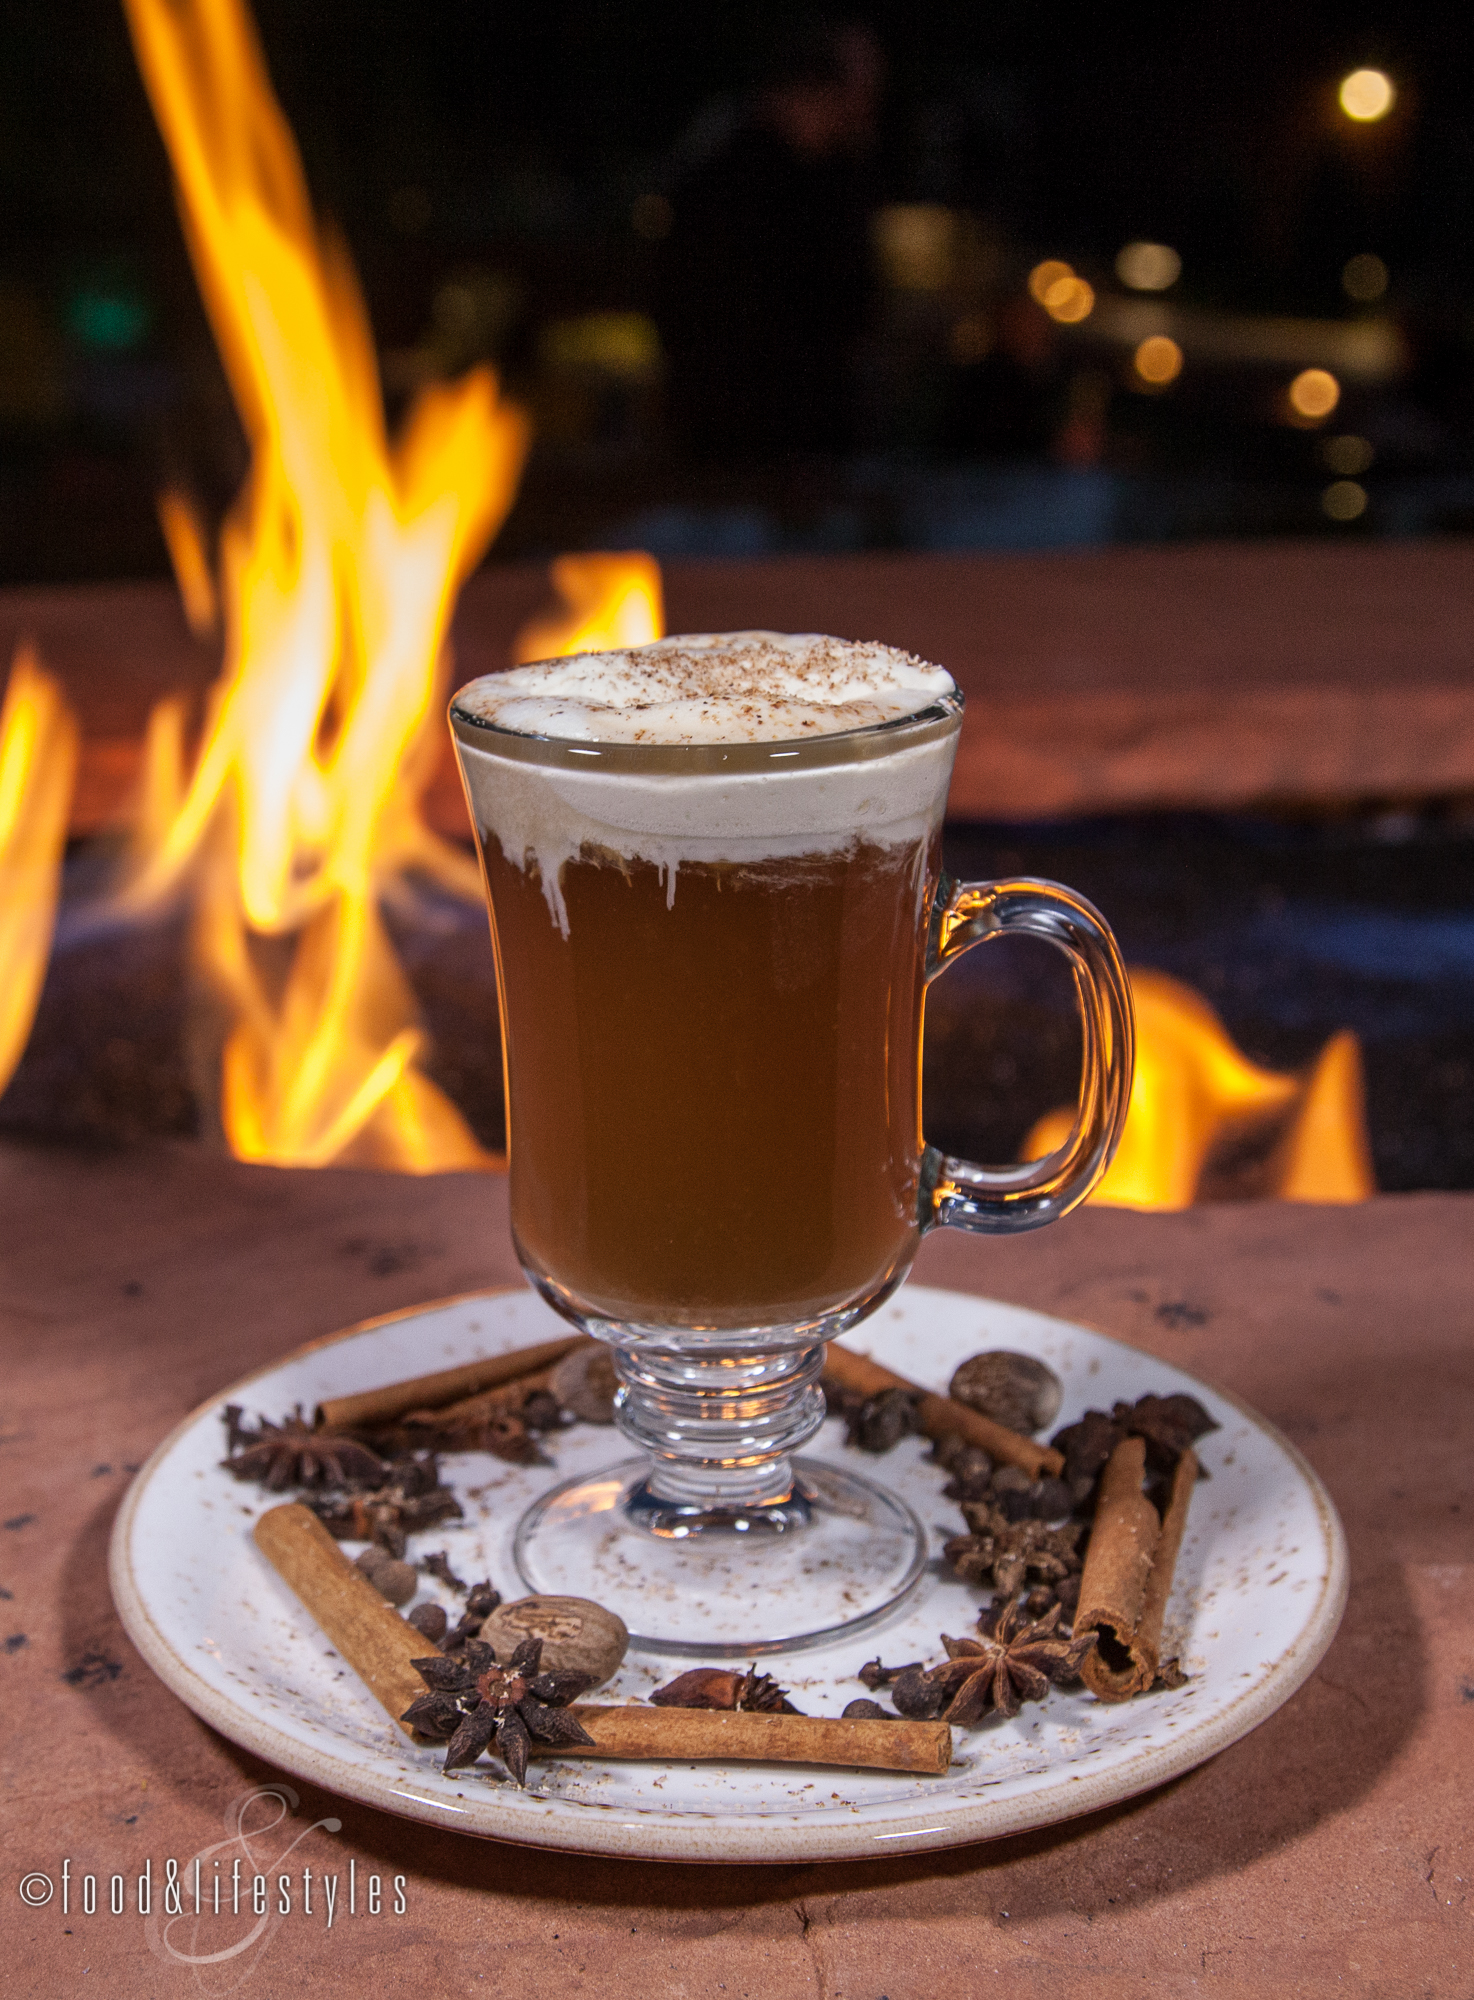 Red Rock Harvest (George Dickel rye, cinnamon syrup, warm spiced cider, coconut cream, and nutmeg)